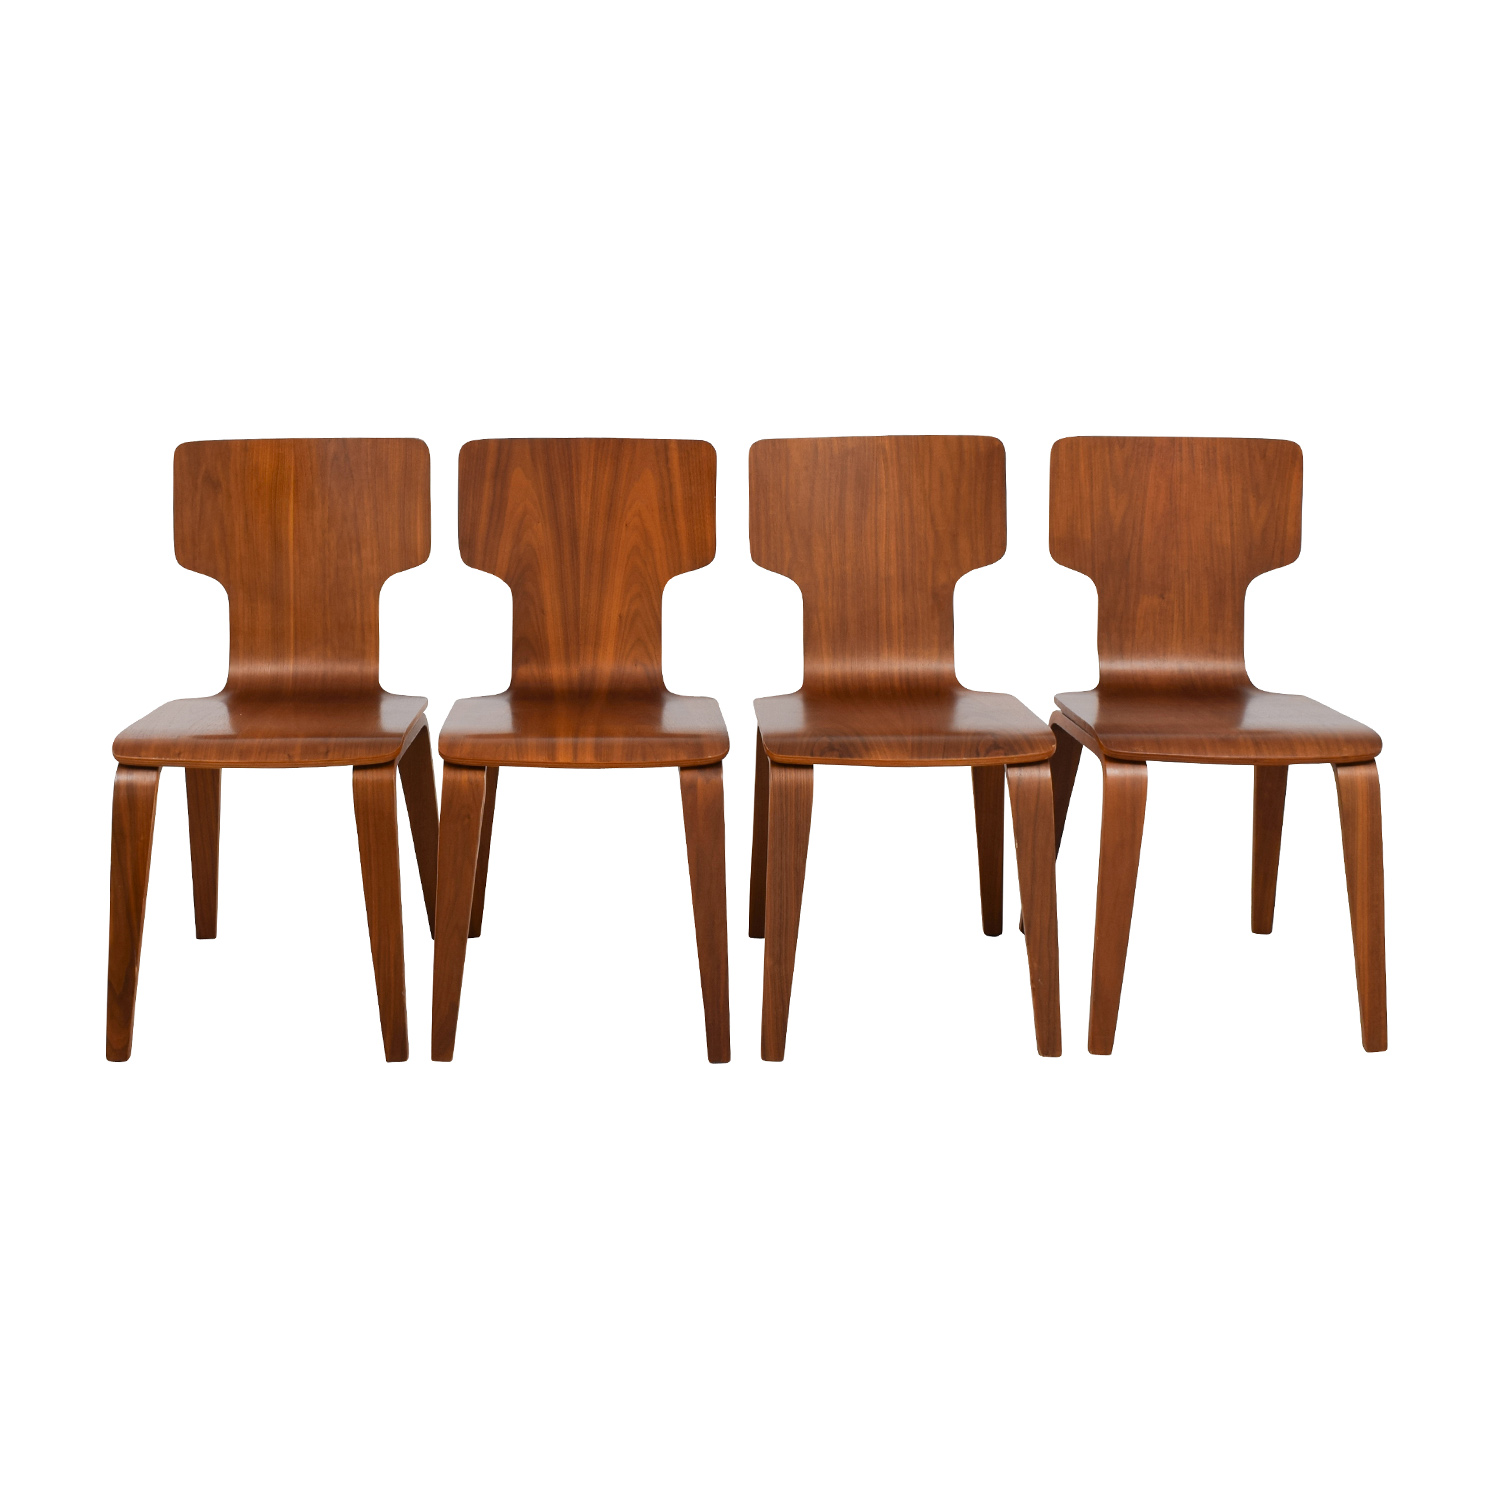 West Elm West Elm Dining Table Chairs dimensions